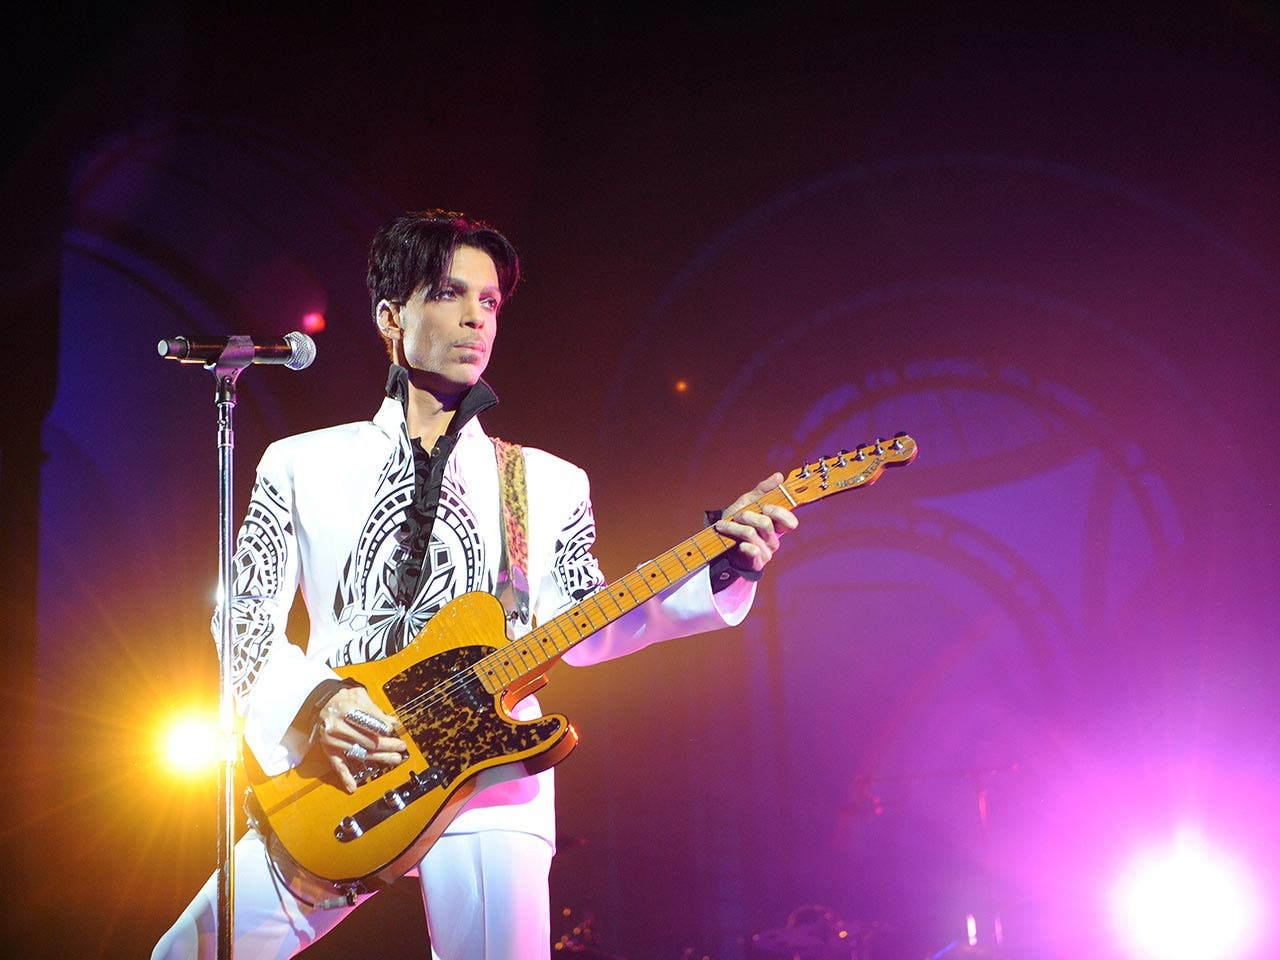 Prince | BERTRAND GUAY/AFP/Getty Images